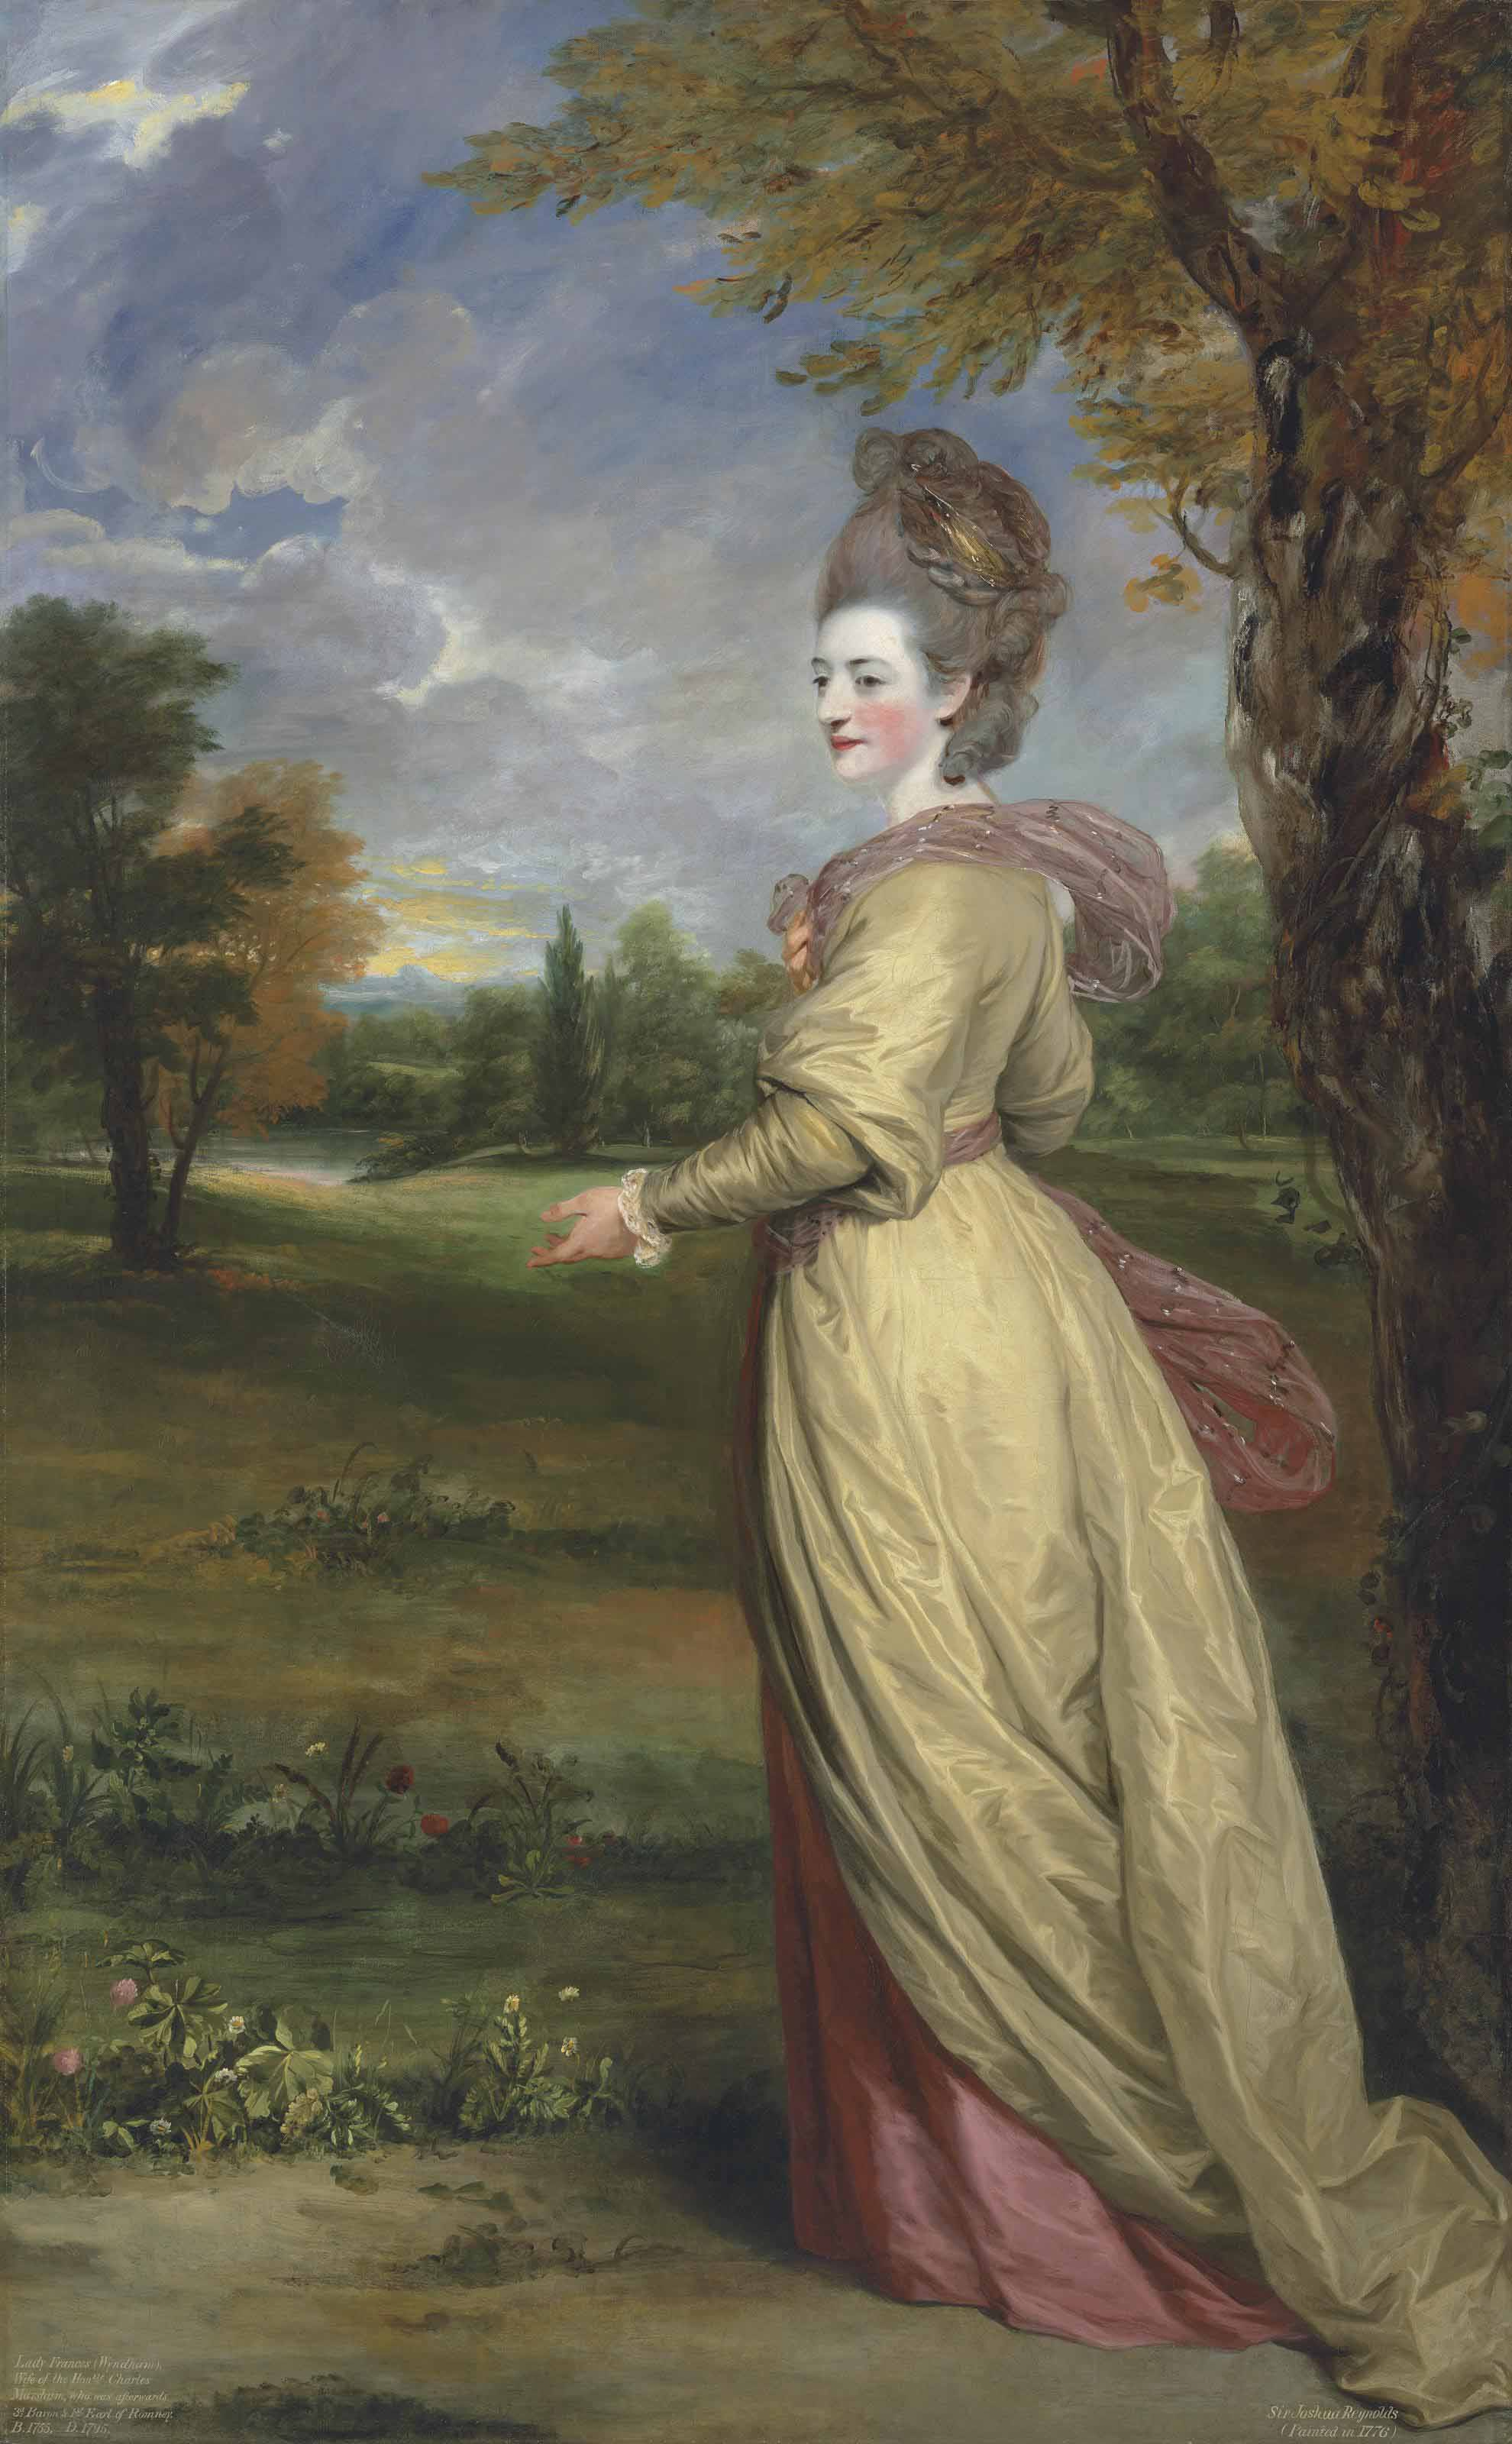 Portrait of Lady Frances Marsham, later Countess of Romney (1755-1795), full-length, in a yellow dress and pink shawl, in a park landscape